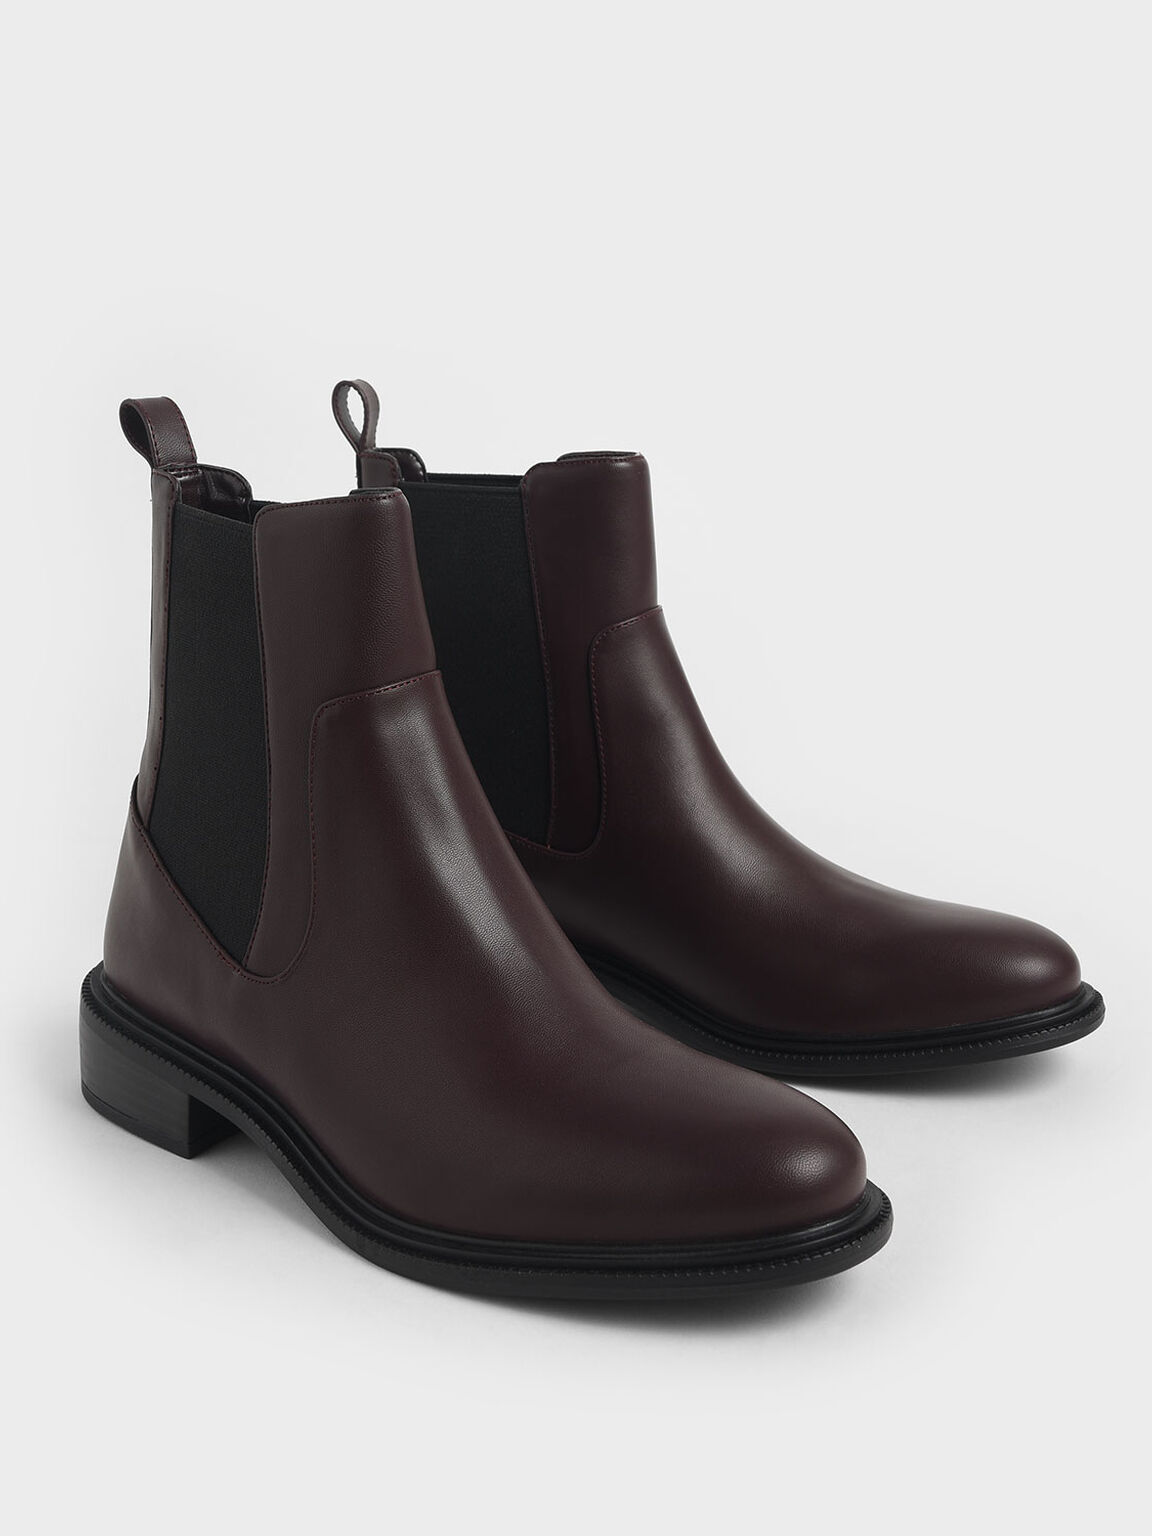 Round Toe Chelsea Boots, Burgundy, hi-res